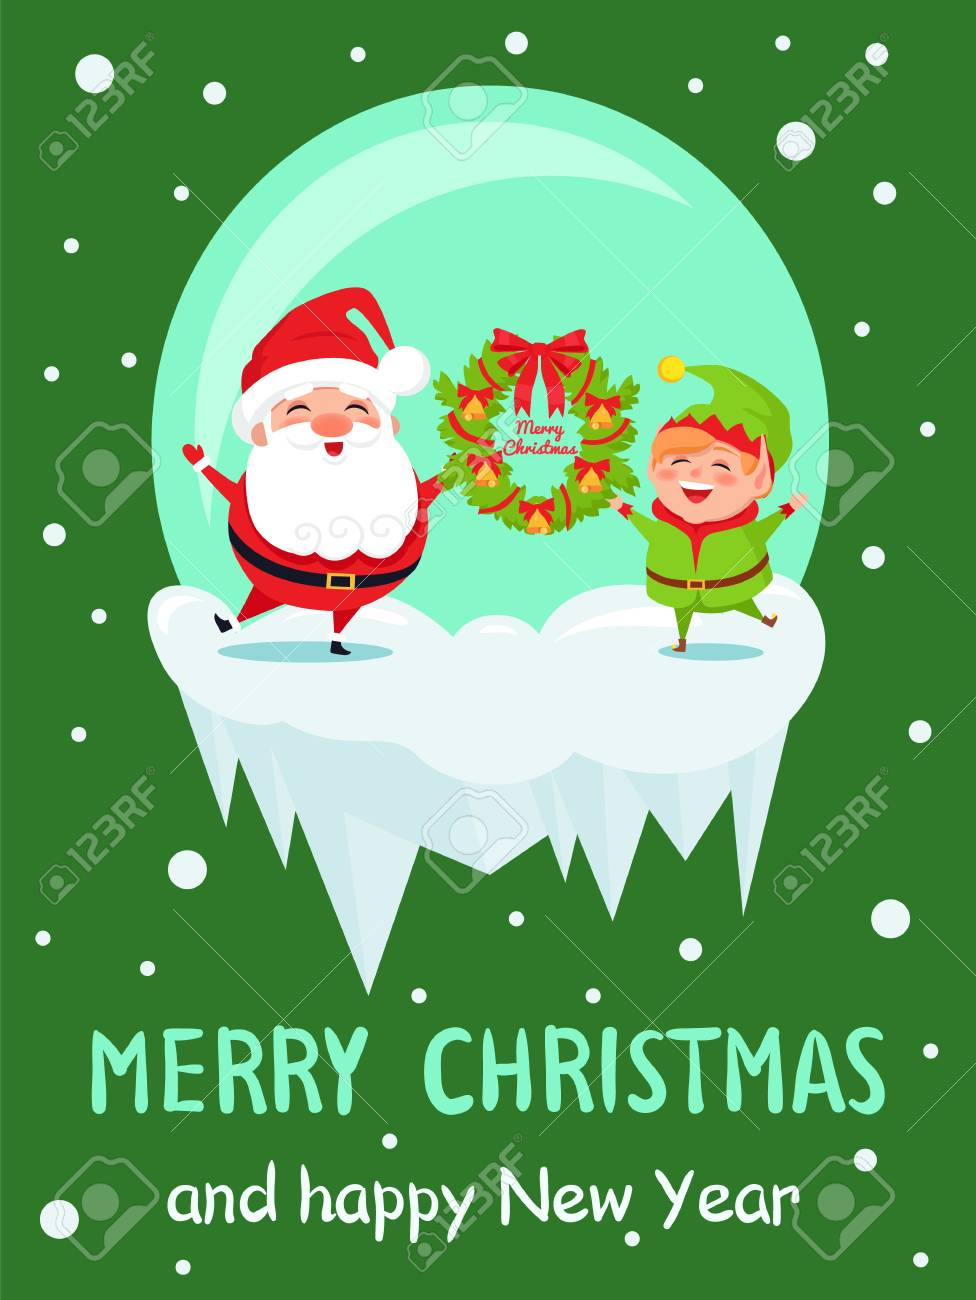 merry christmas and happy new year poster with elf and santa in crystal ball greeting everyone